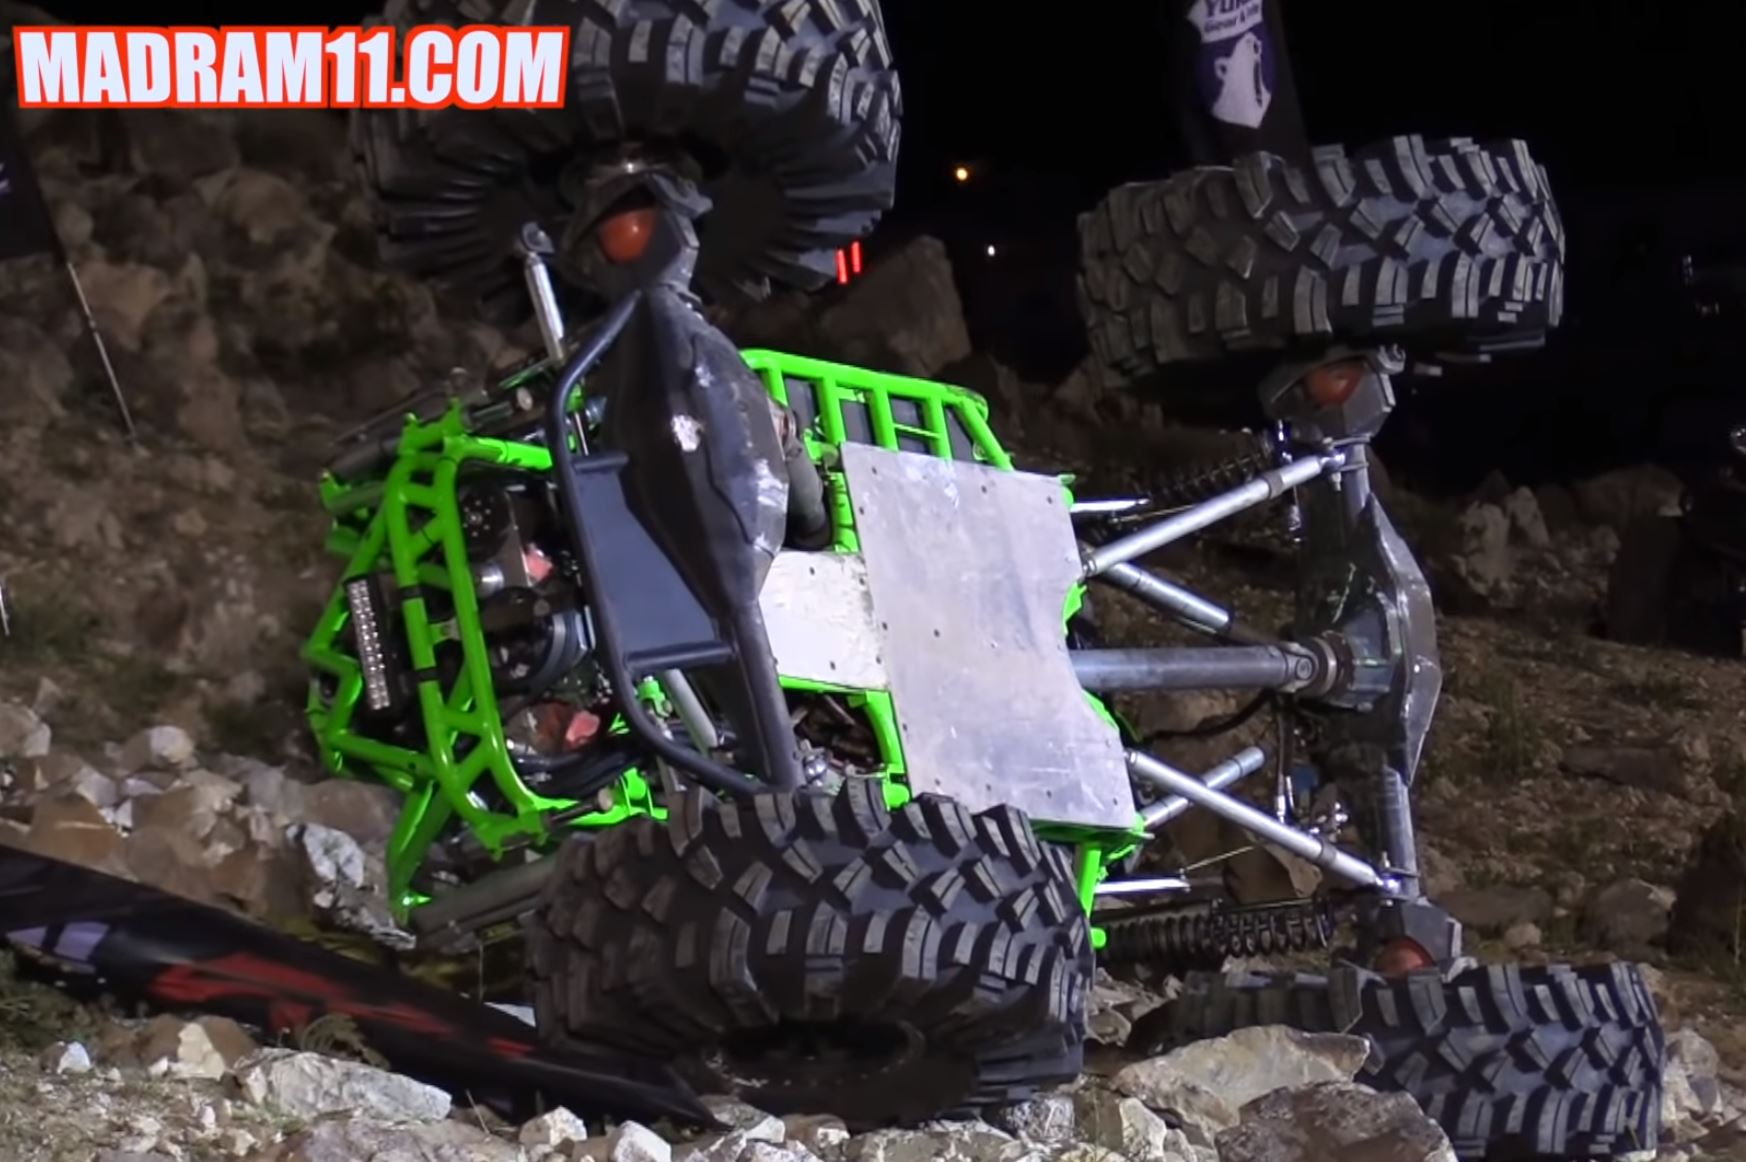 The King Of The Hammers Rock Bouncer Shootout Was Full Of High Flying, And Flipping, Action!